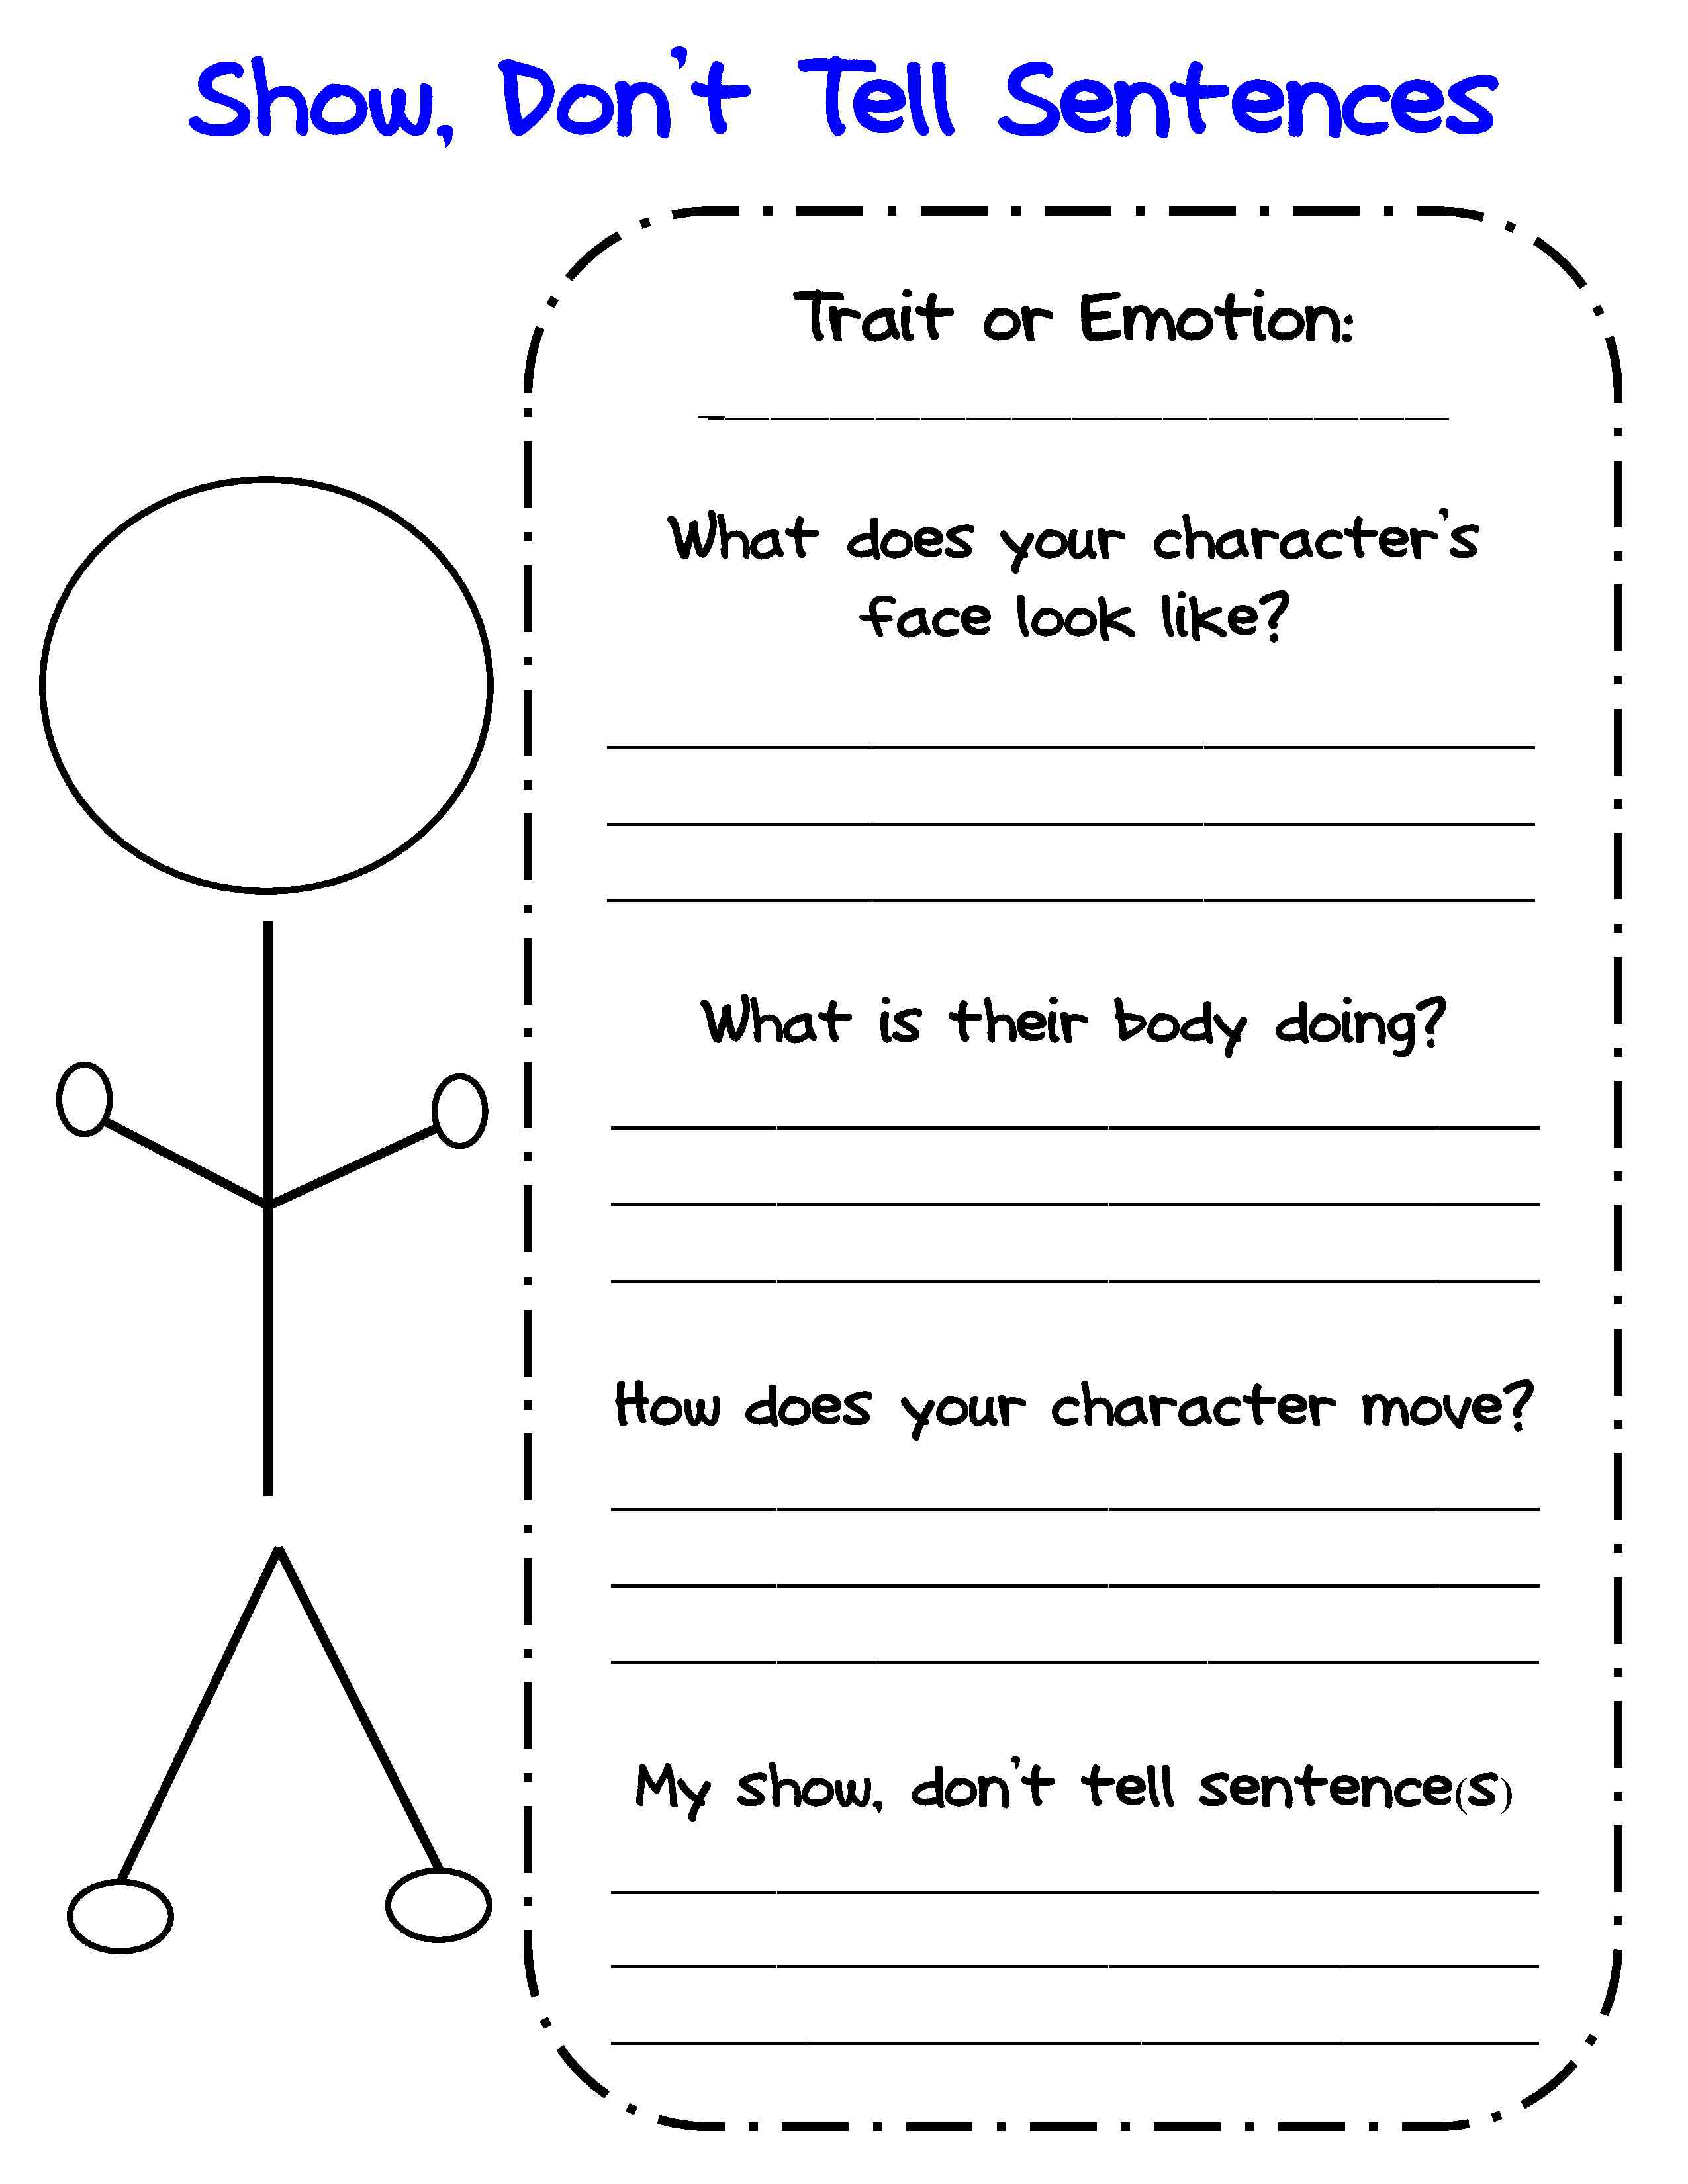 Bringing Characters To Life In Writer's Workshop | Scholastic | Printable Character Traits Worksheets